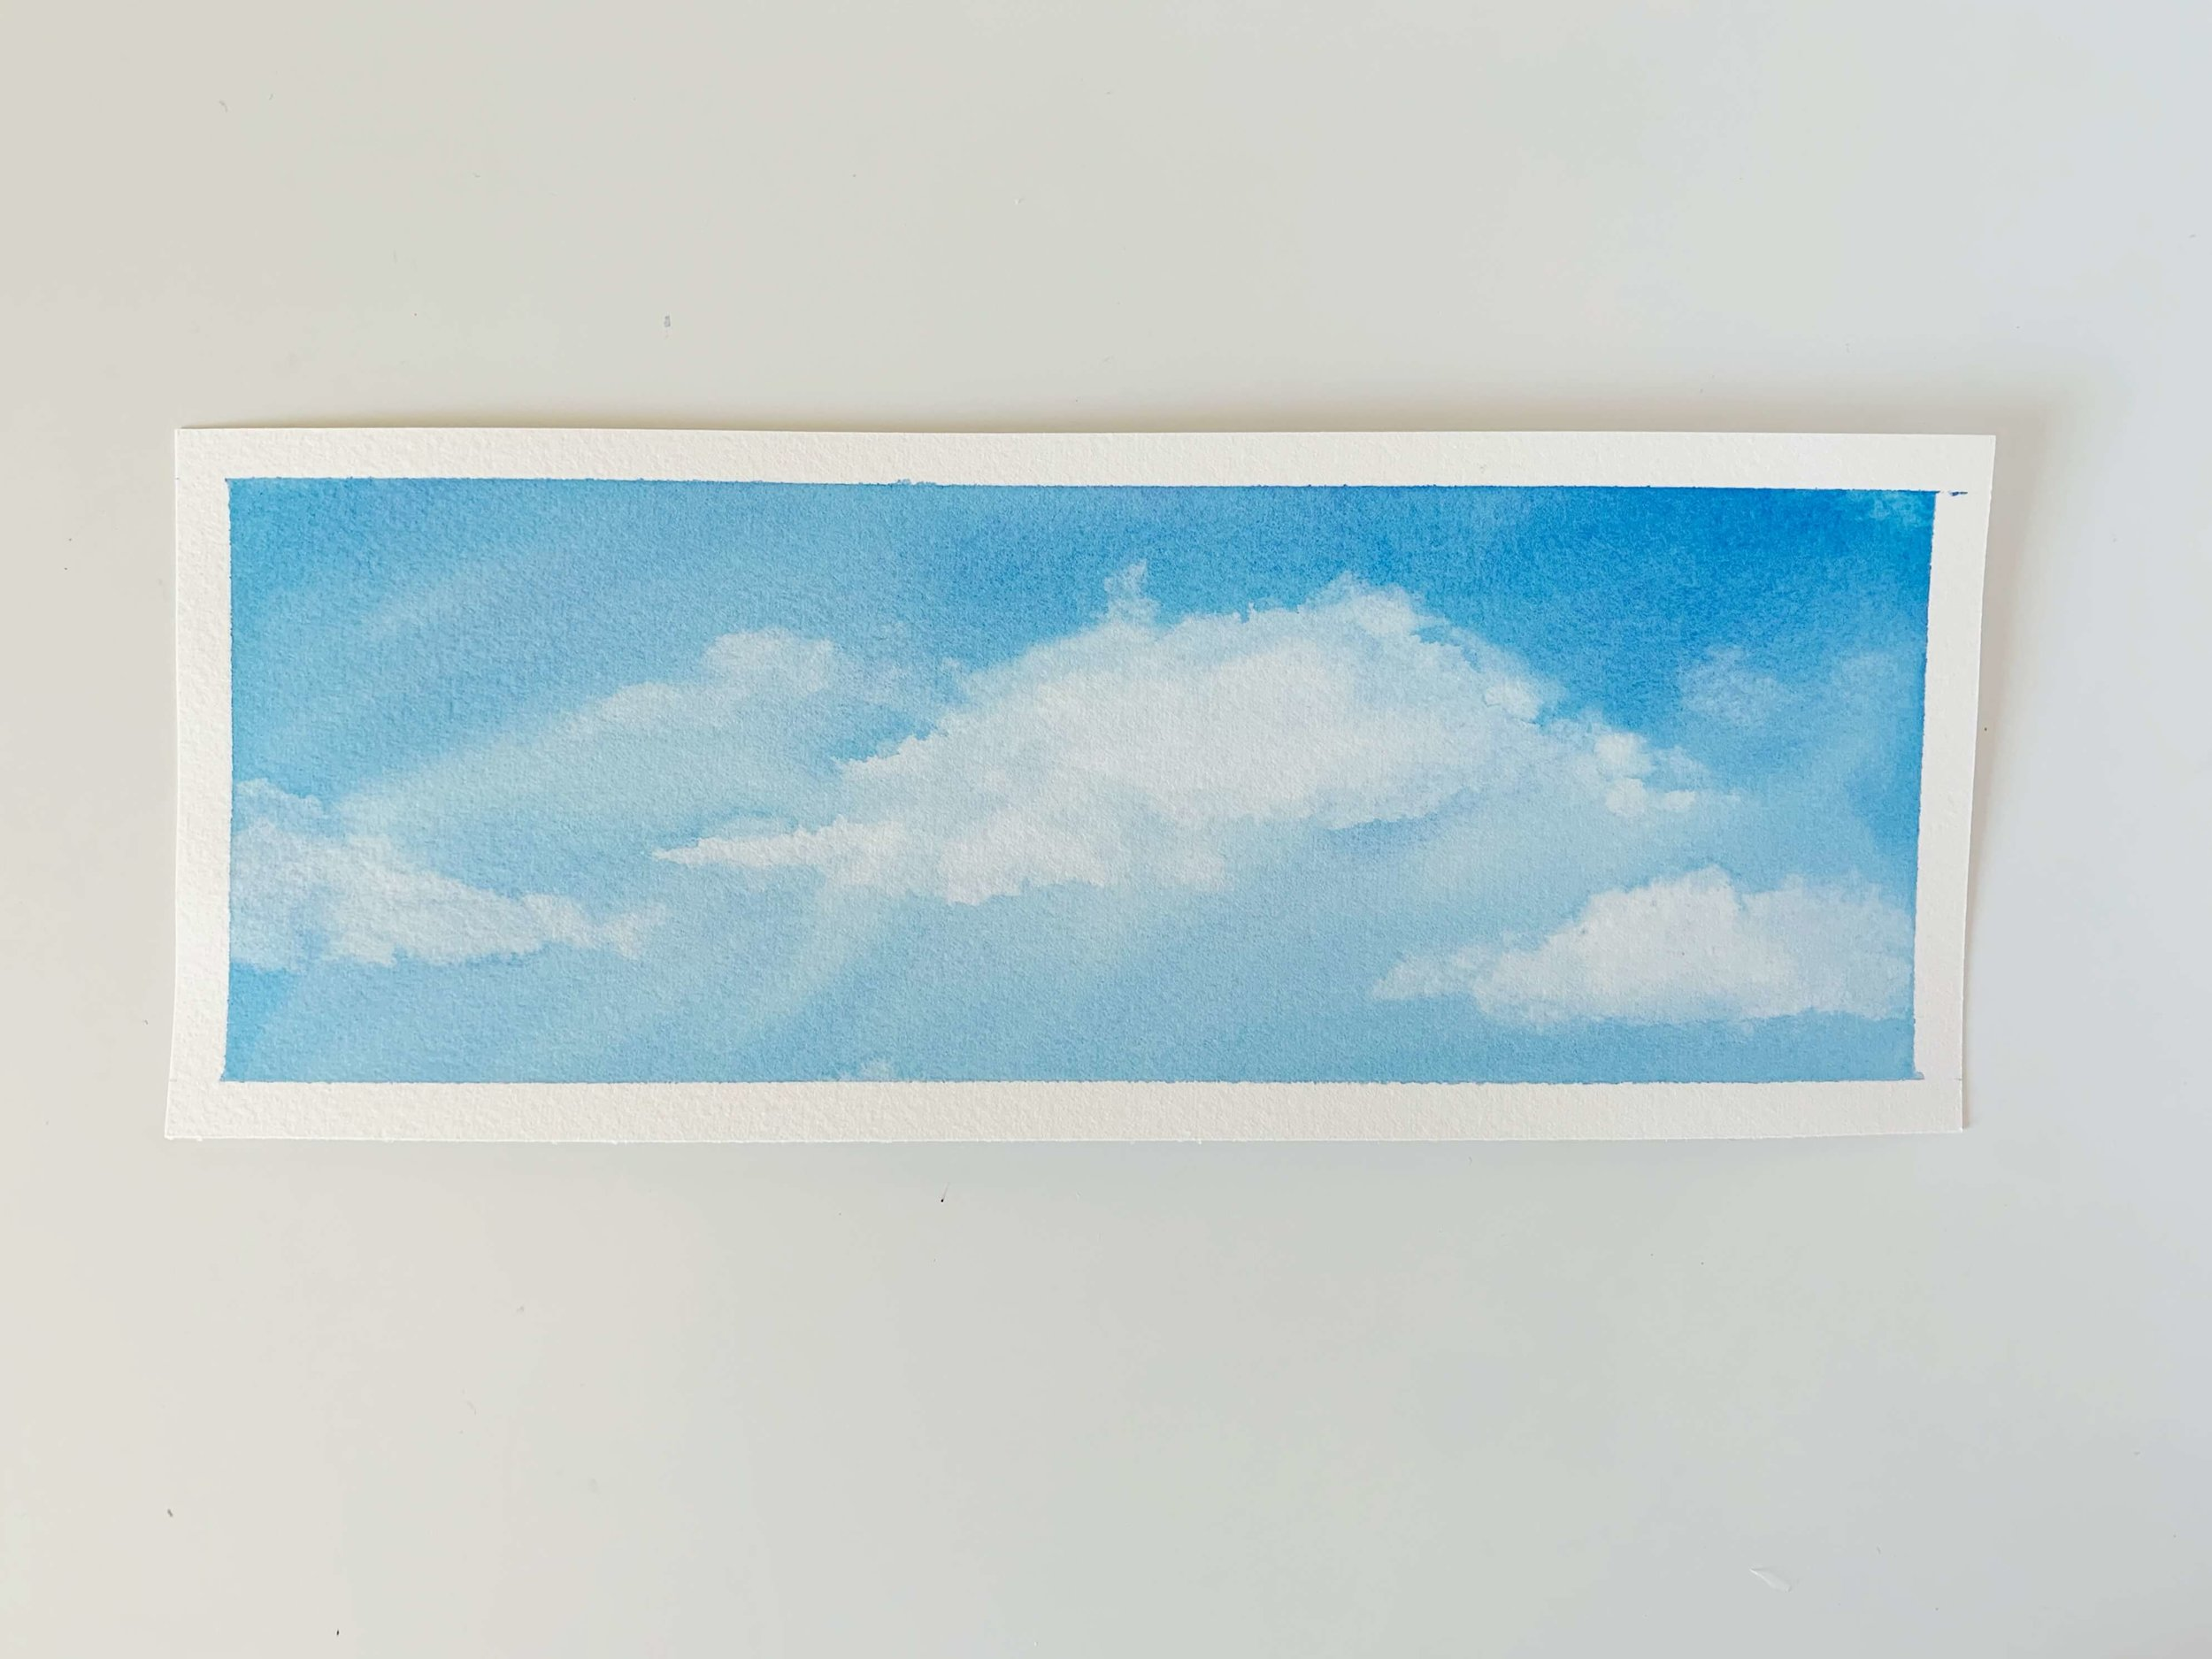 Watercolor Cobalt Blue Sky and Clouds